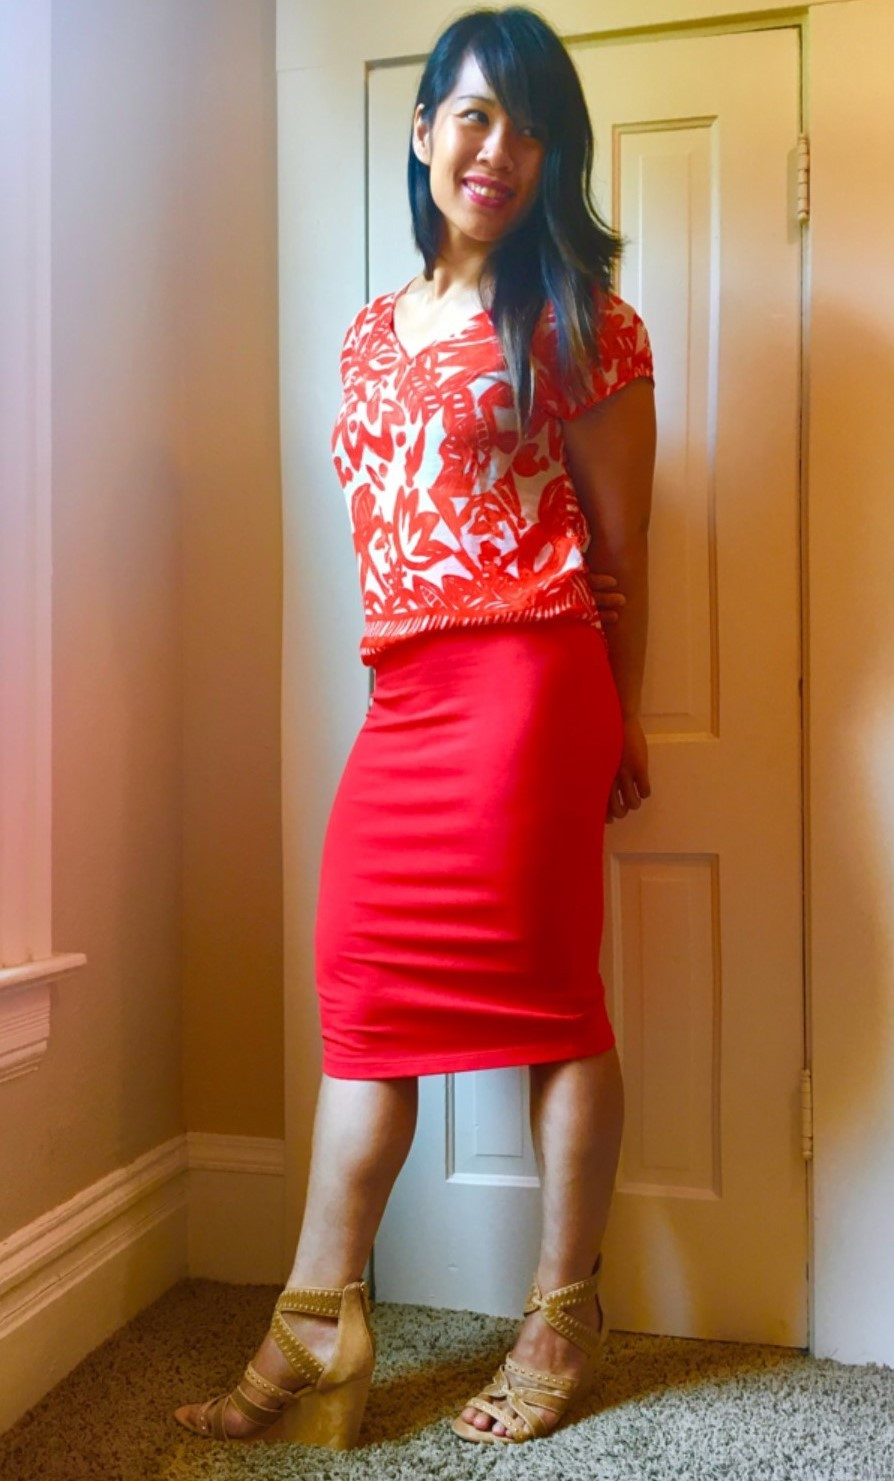 Kat posing in orange skirt with patterned orange top for a slimming effect